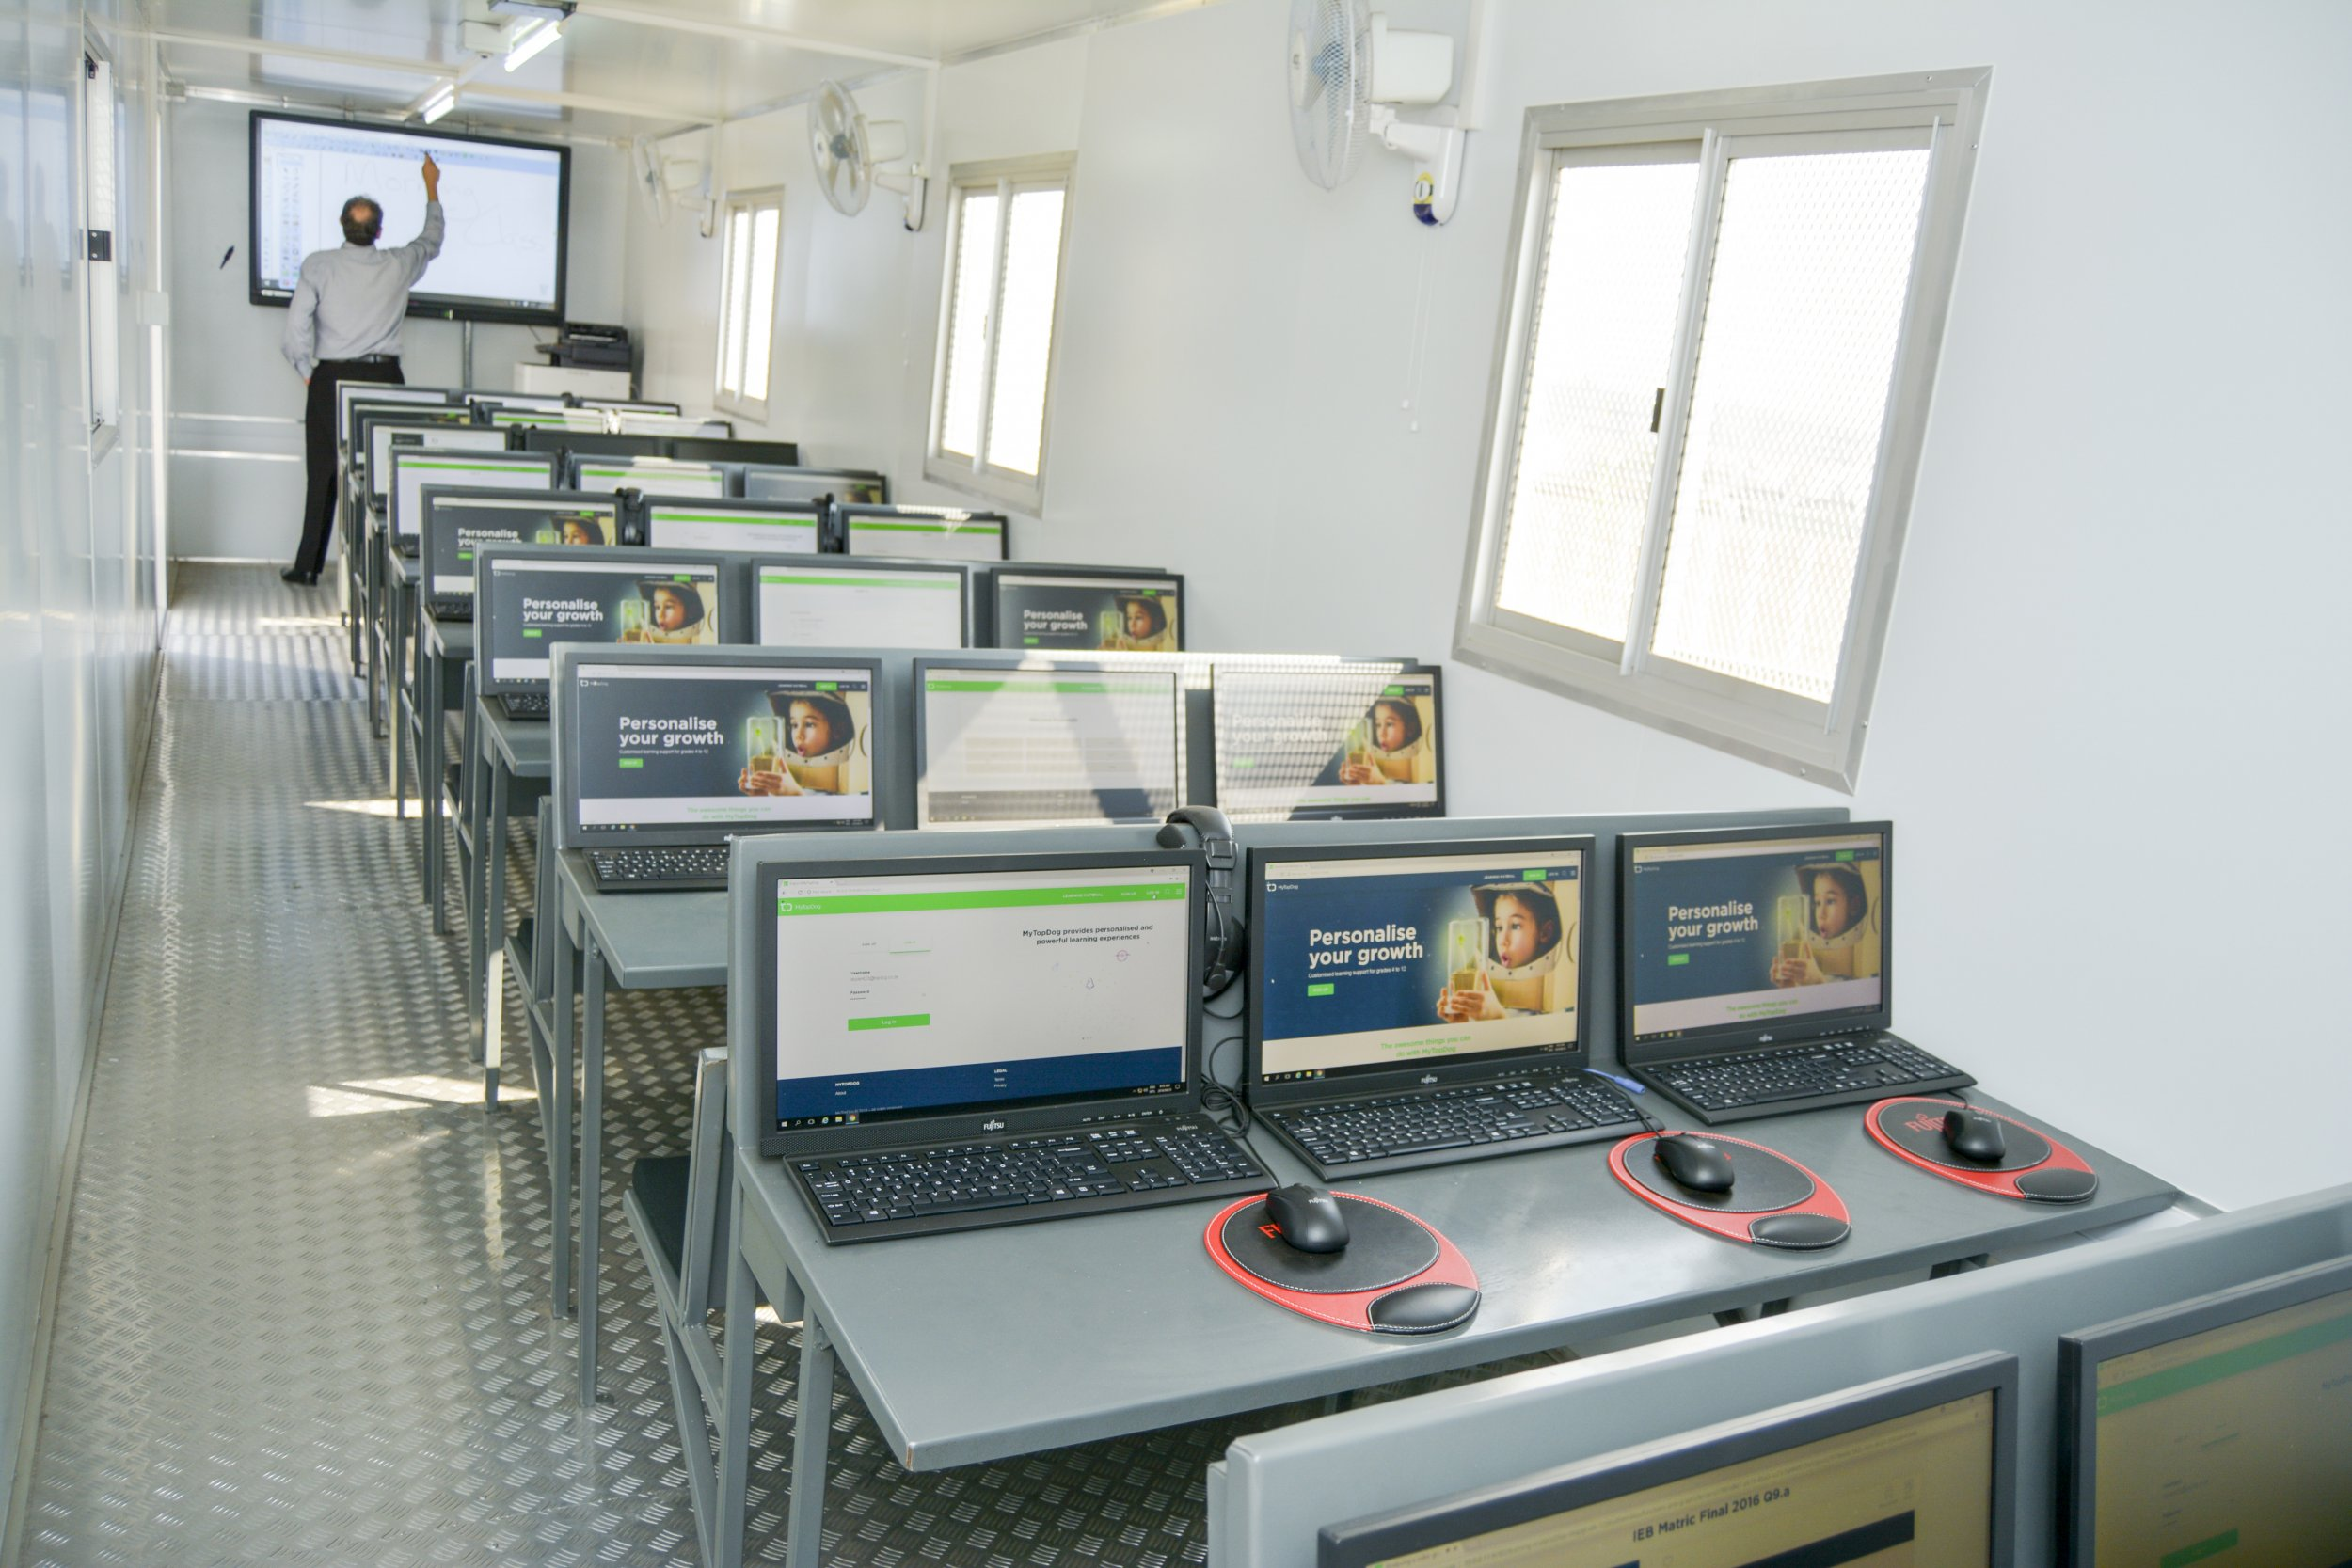 The Edu Smart Green Centres equipped with the latest digital learning devices